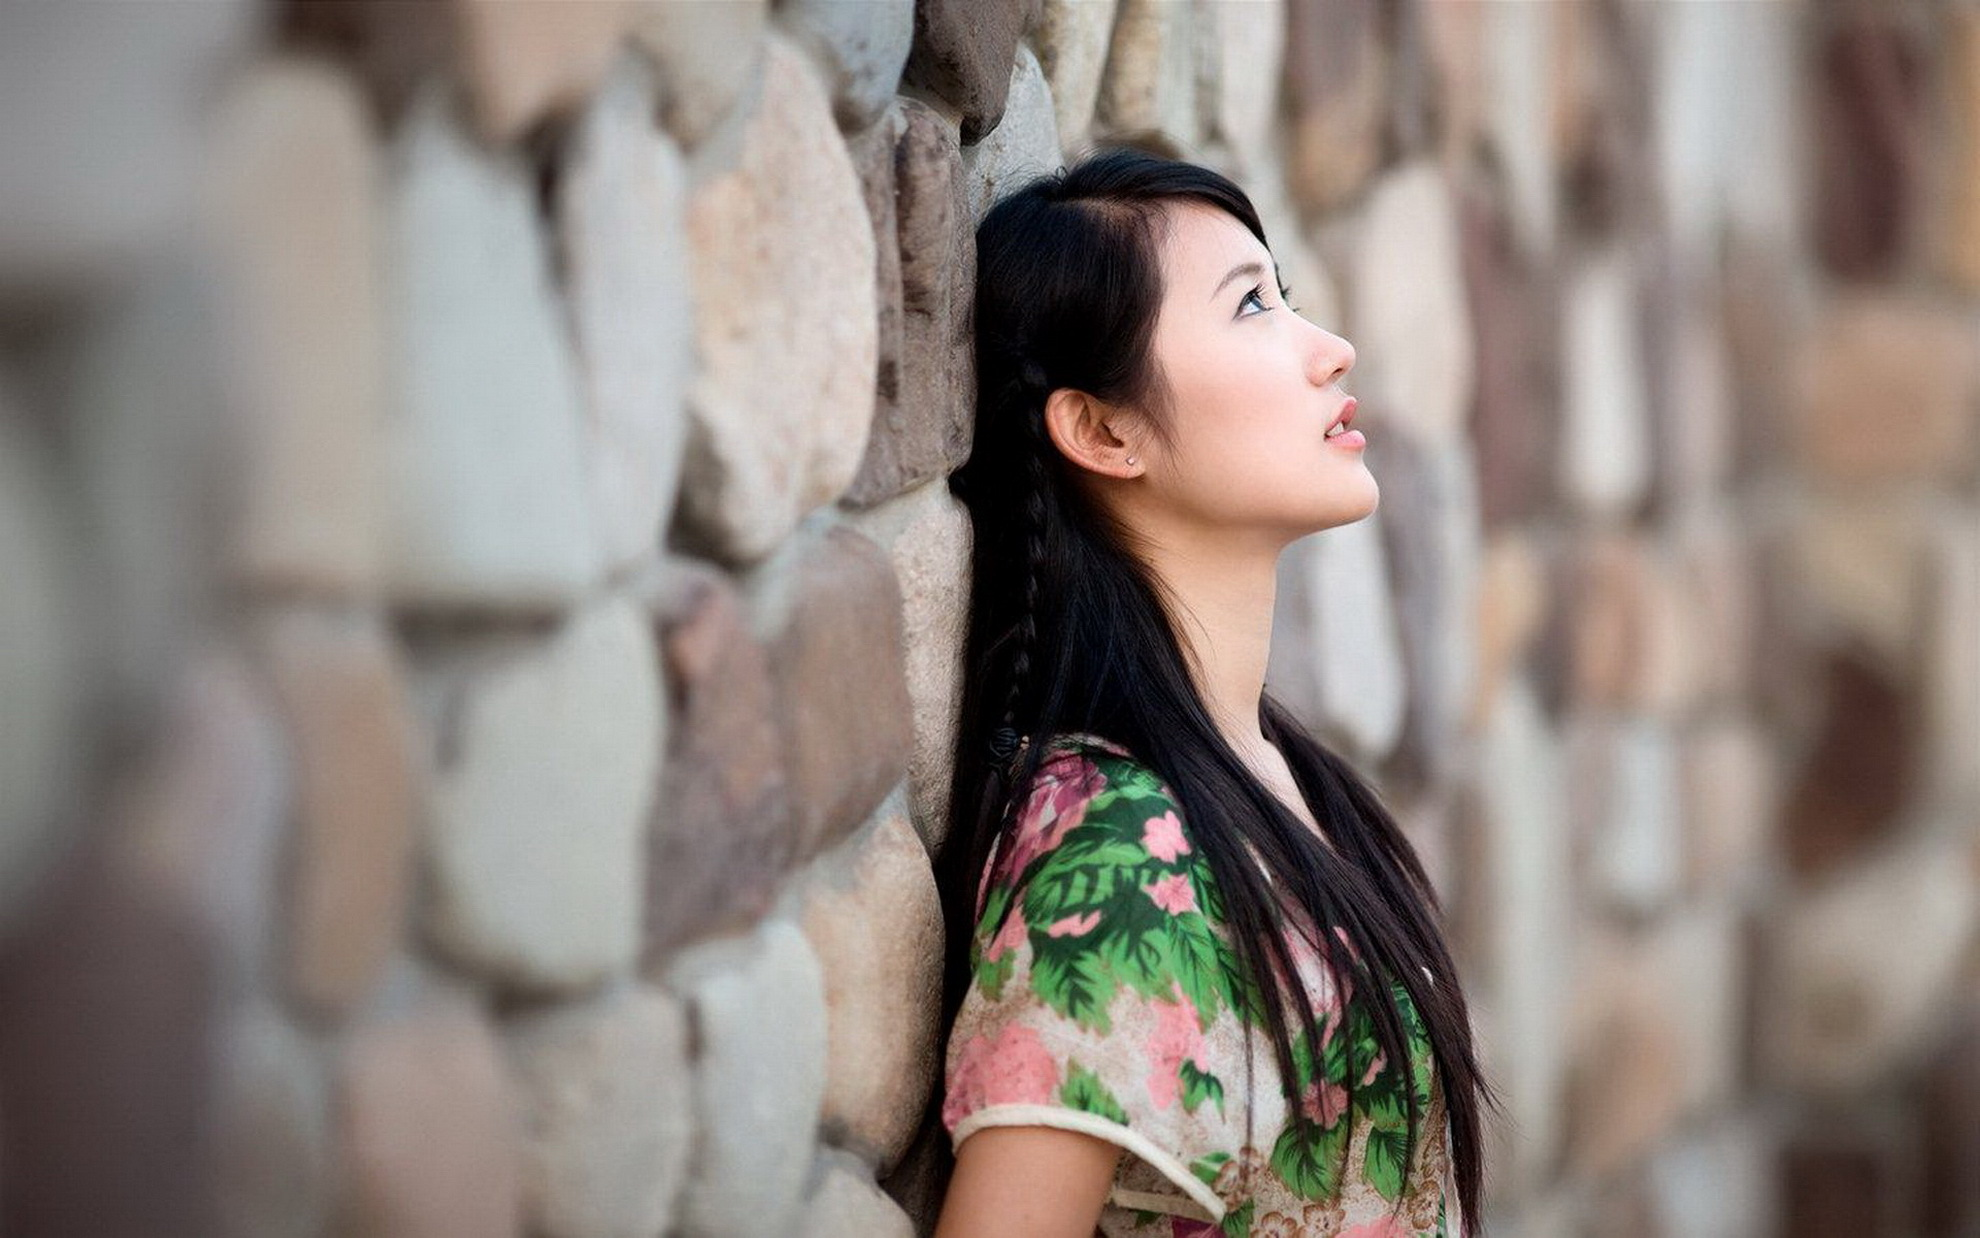 wall asian personals Asian dating for asian & asian american singles in north america and more we have successfully connected many asian singles in the us, canada, uk, australia, and beyond.